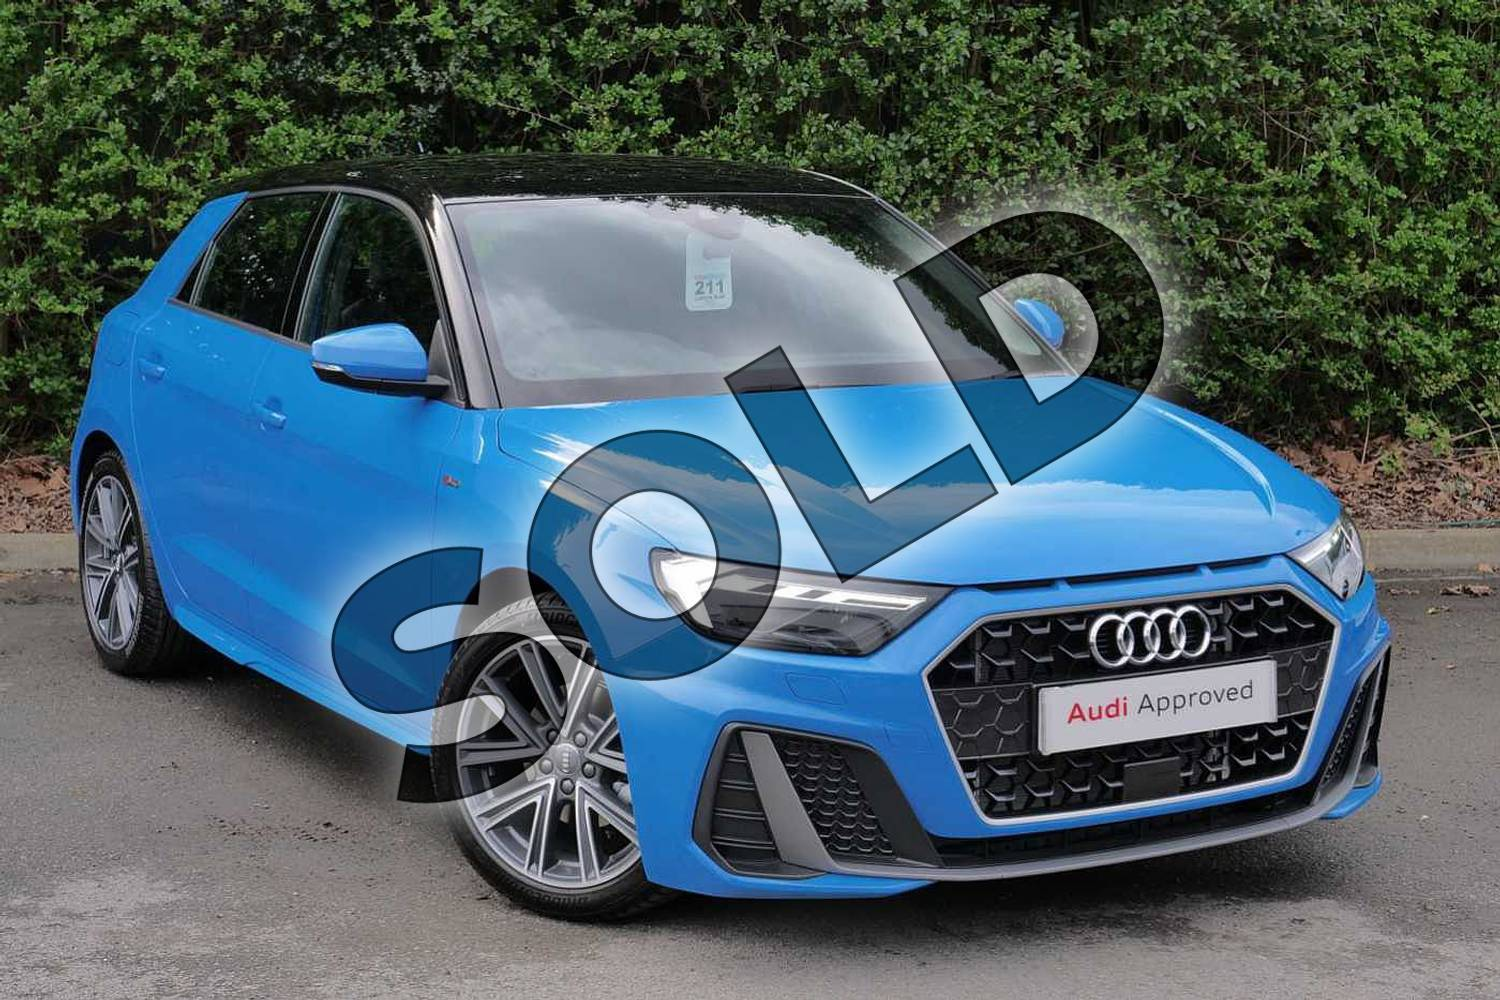 2019 Audi A1 Sportback 35 TFSI S Line 5dr in Turbo Blue at Worcester Audi